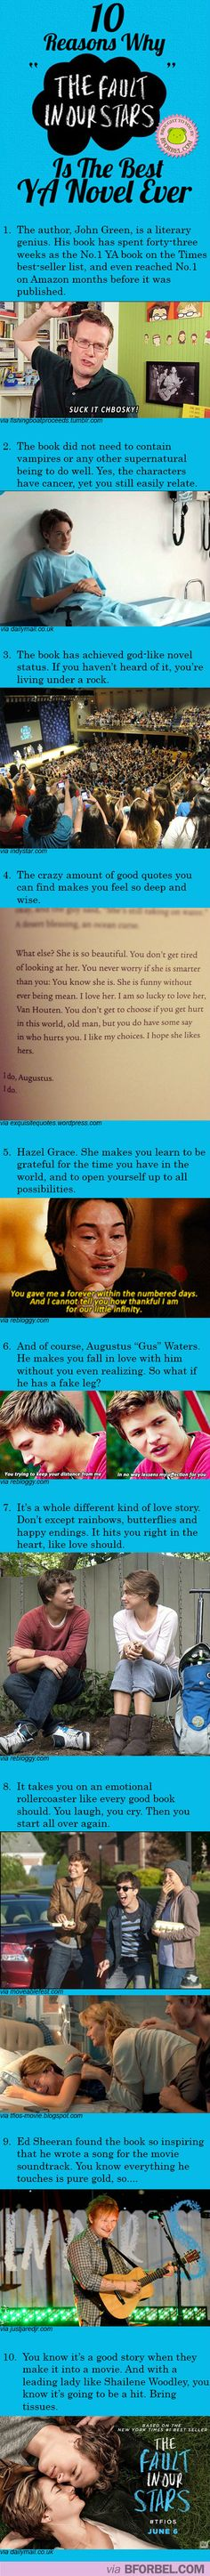 "10 Reasons Why ""The Fault In Our Stars"" Is The Best Y.A. Novel Ever… AGREED"